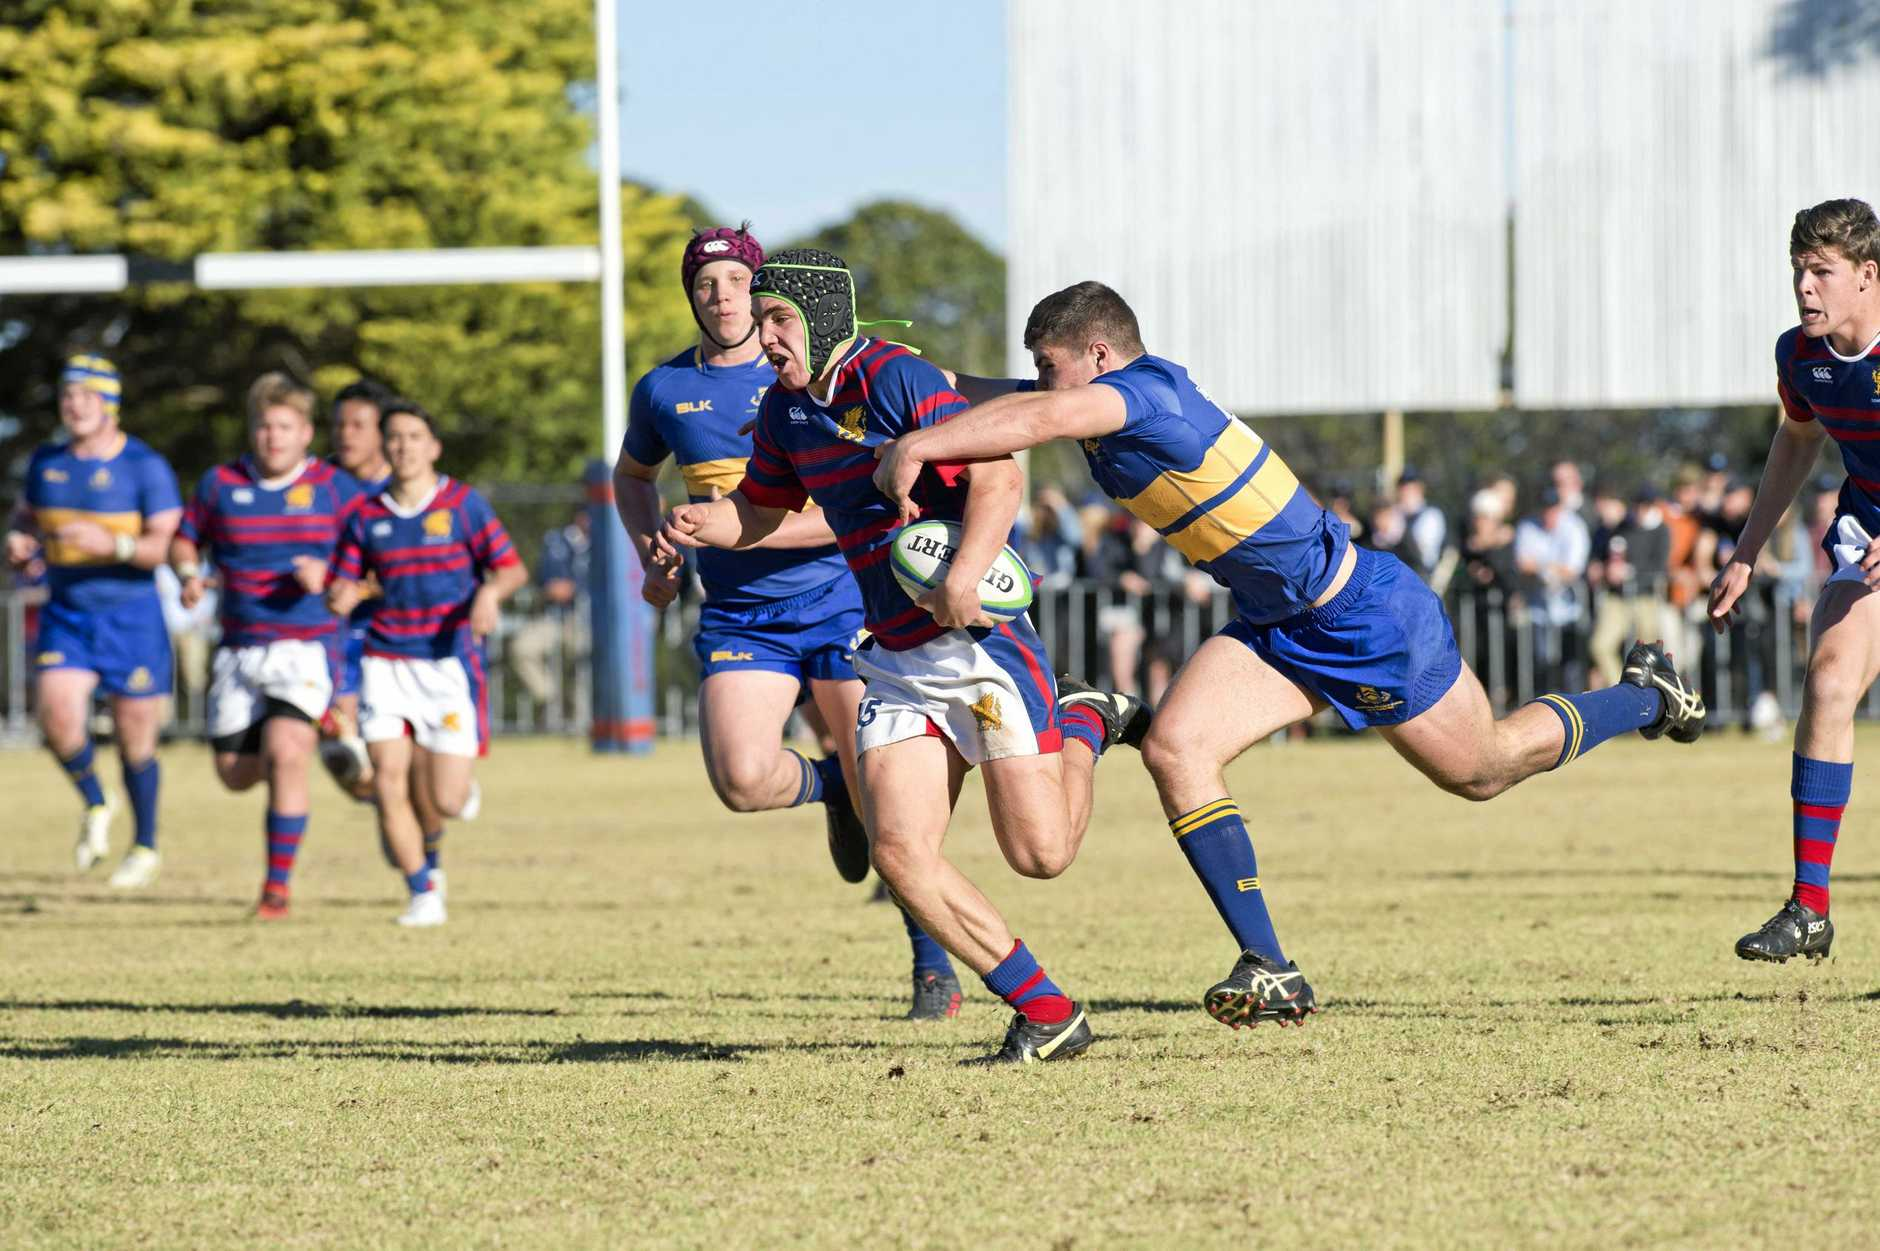 Mac Grealy on the attack for Downlands against TGS during last year's annual Toowoomba First XV clash.